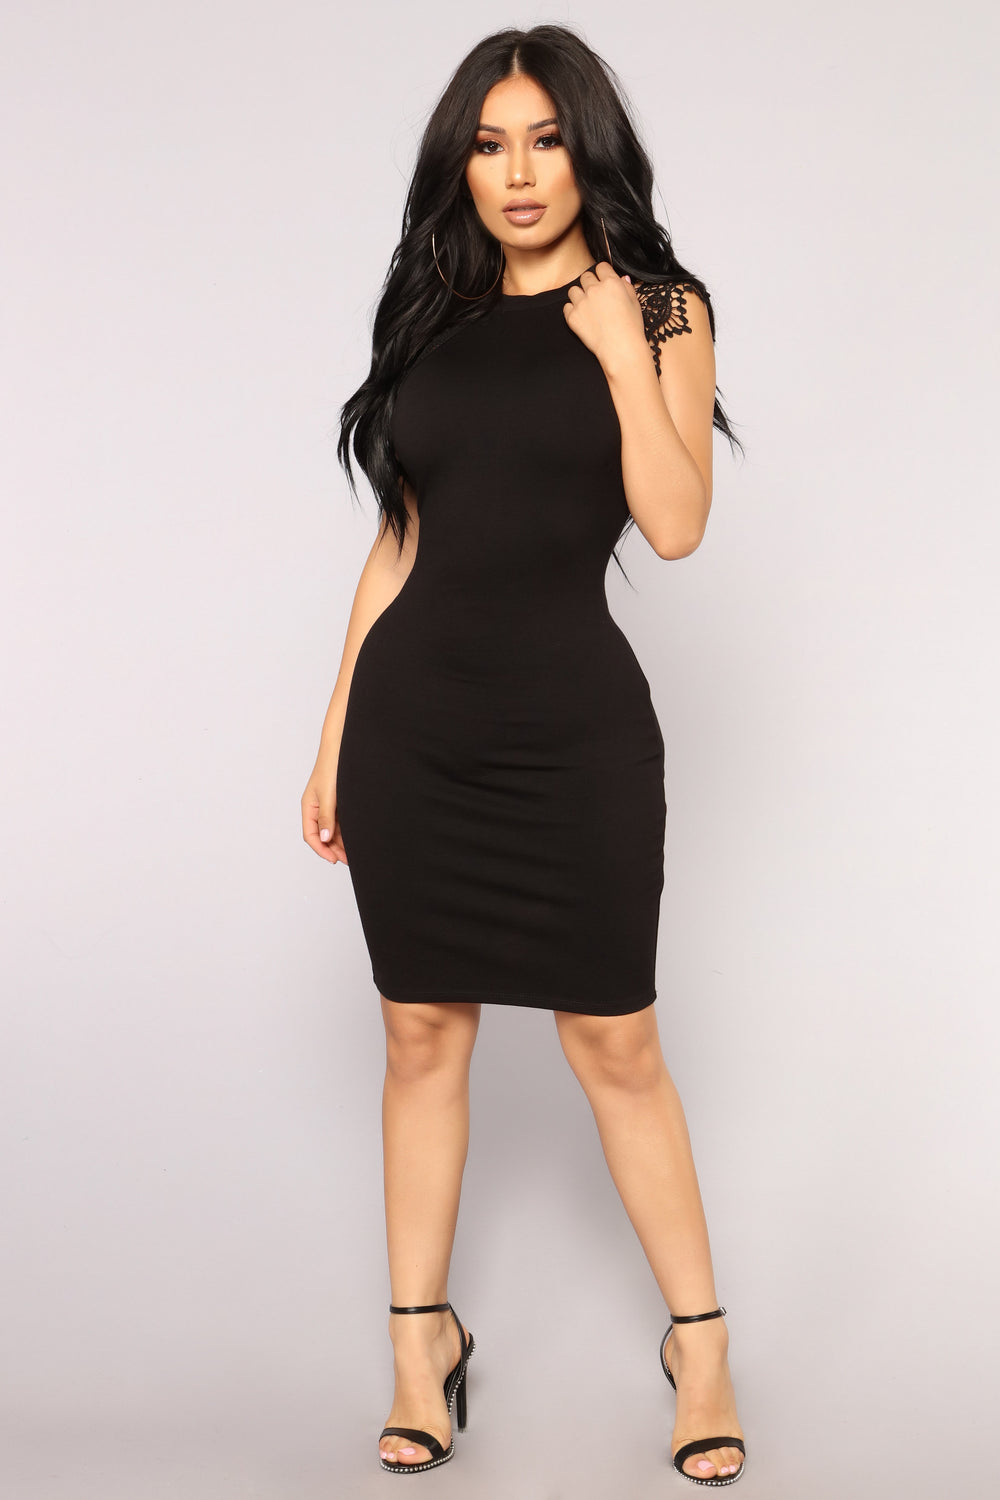 Dasia Lace Dress - Black